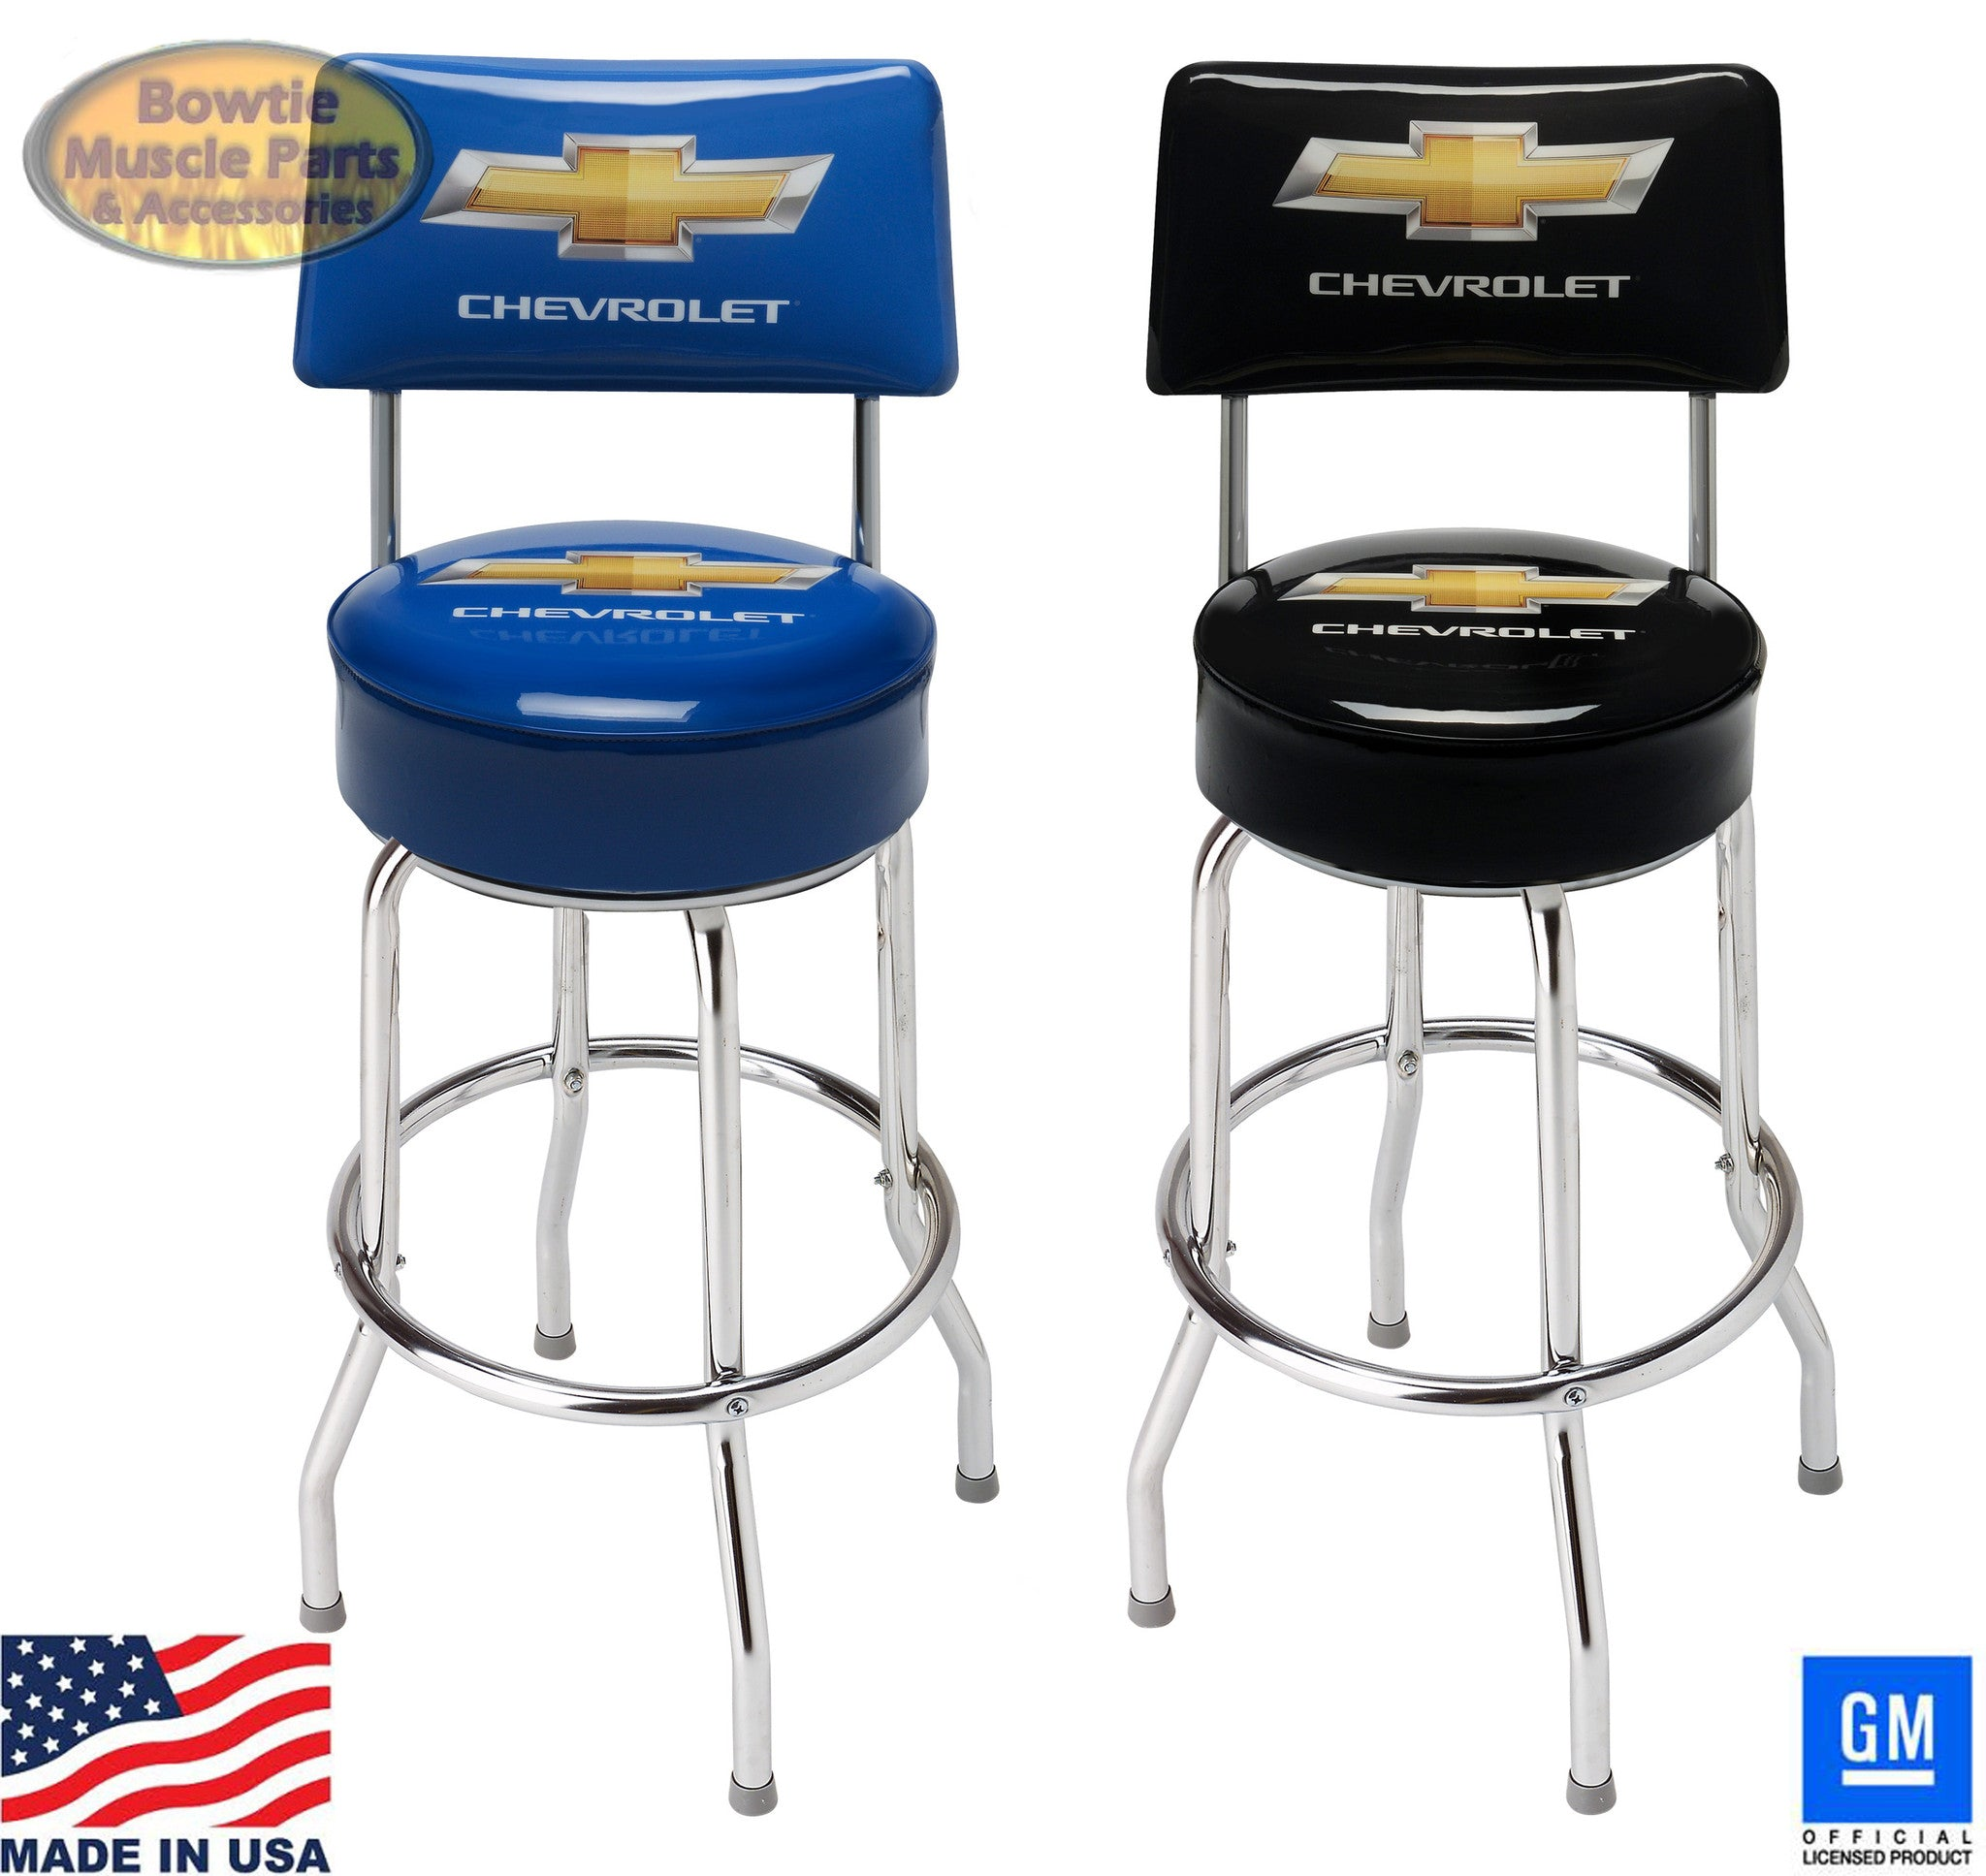 Chevrolet Bar Stool Counter Shop With Back Rest Made In